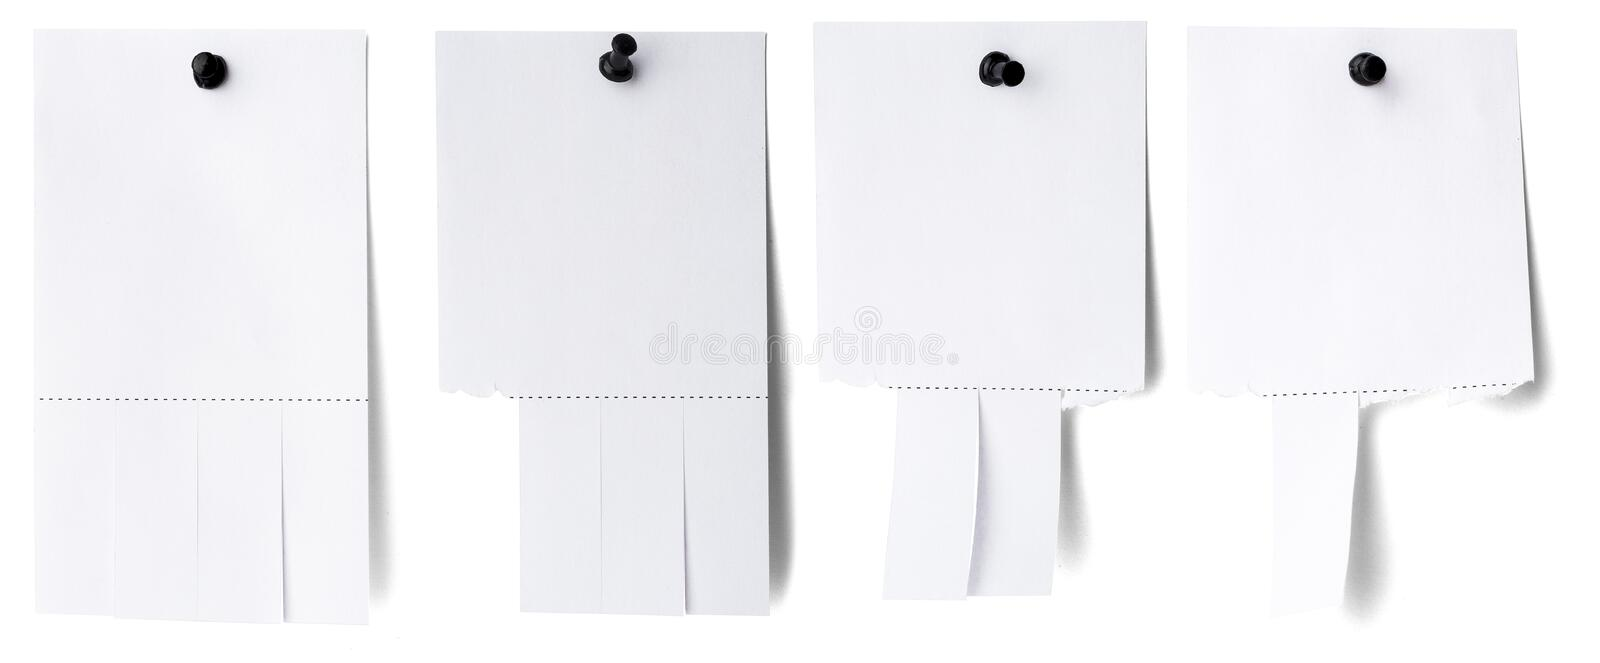 Blank white paper with tear off tabs. Isolated on white royalty free stock photography